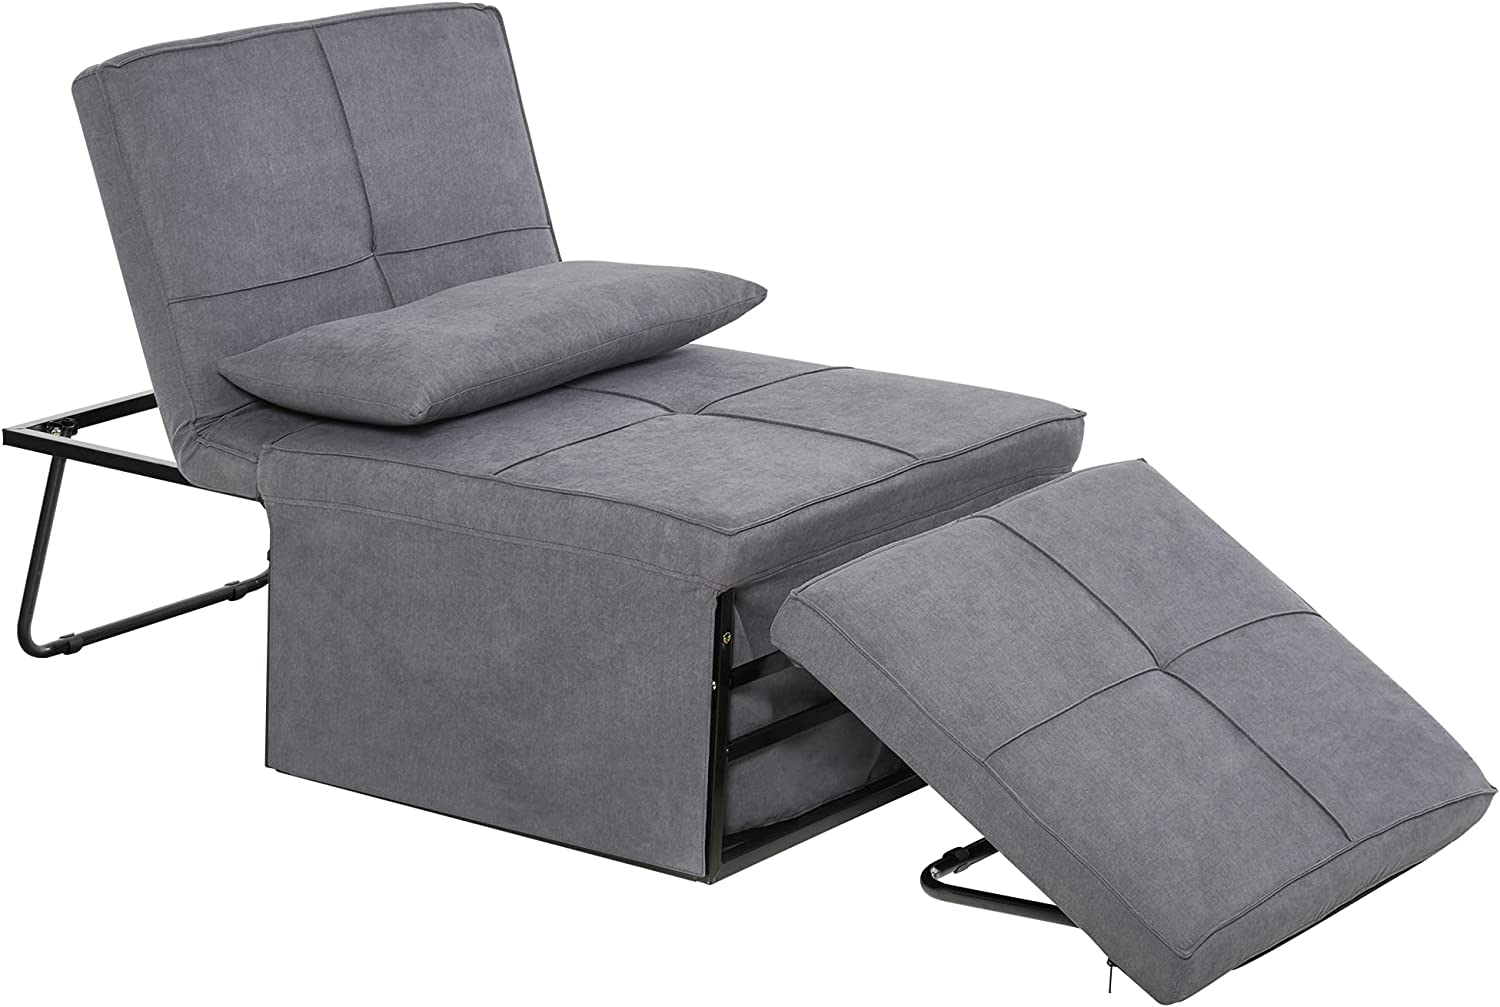 HOMCOM 4 in 1 Multi Function Folding Single Sofa Bed with Ottoman Sleeper Adjustable Backrest Lounger Convertible Upholstered Couch for Living Room Small Space, Grey